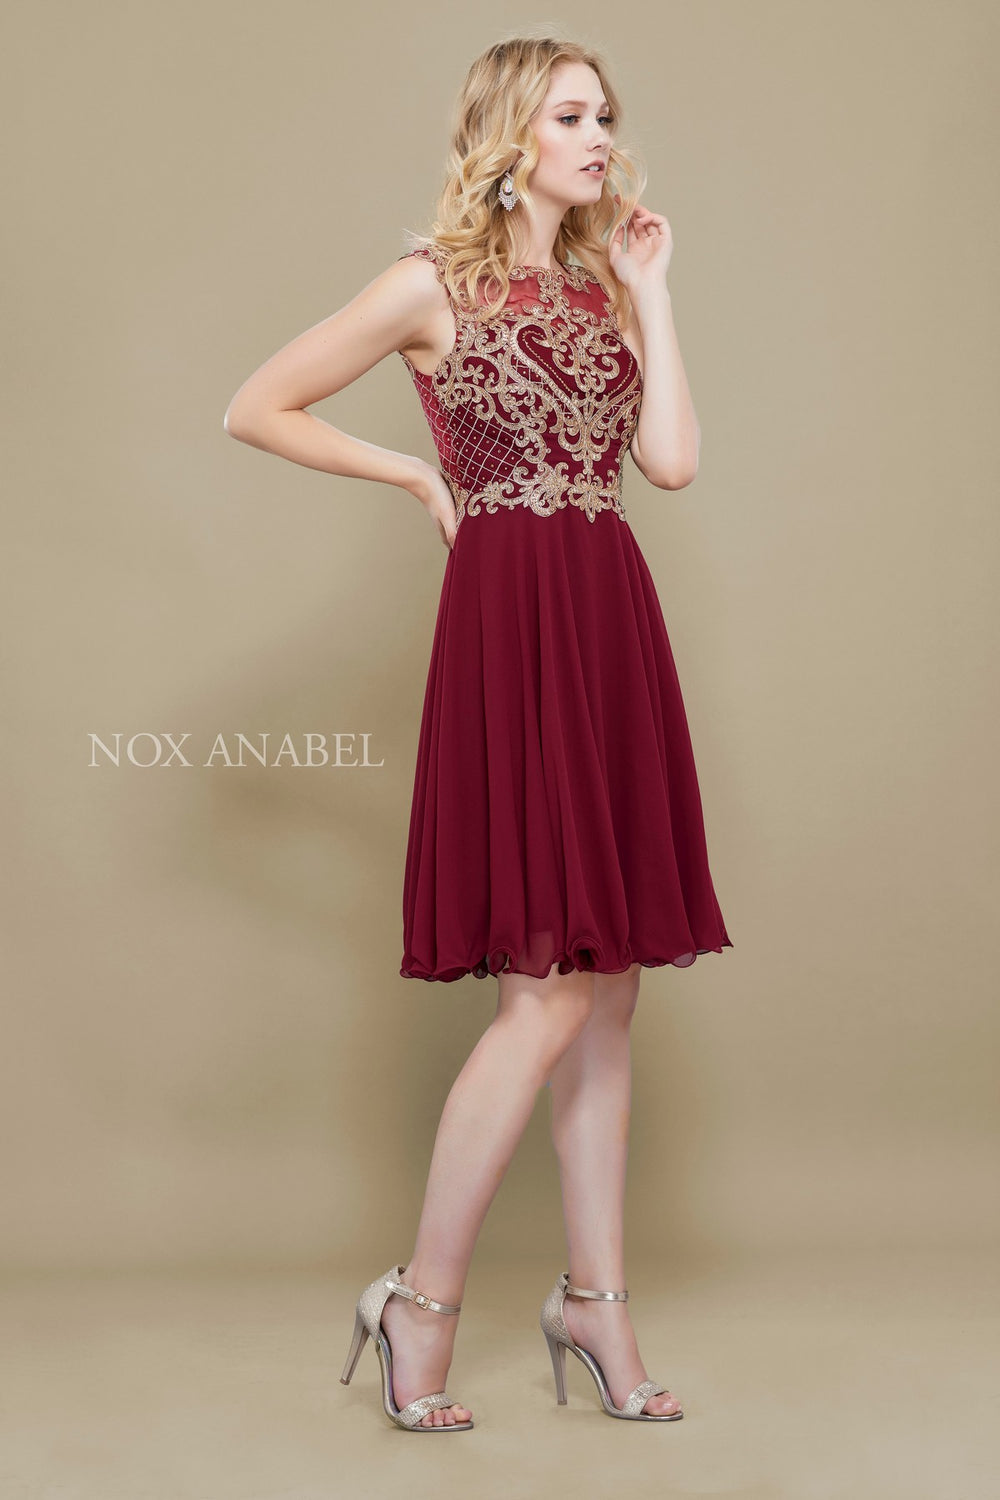 ILLUSION GILDED LACE APPLIQUE A-LINE SHORT SKIRT PROM DRESS 6321 BY NARIANNA